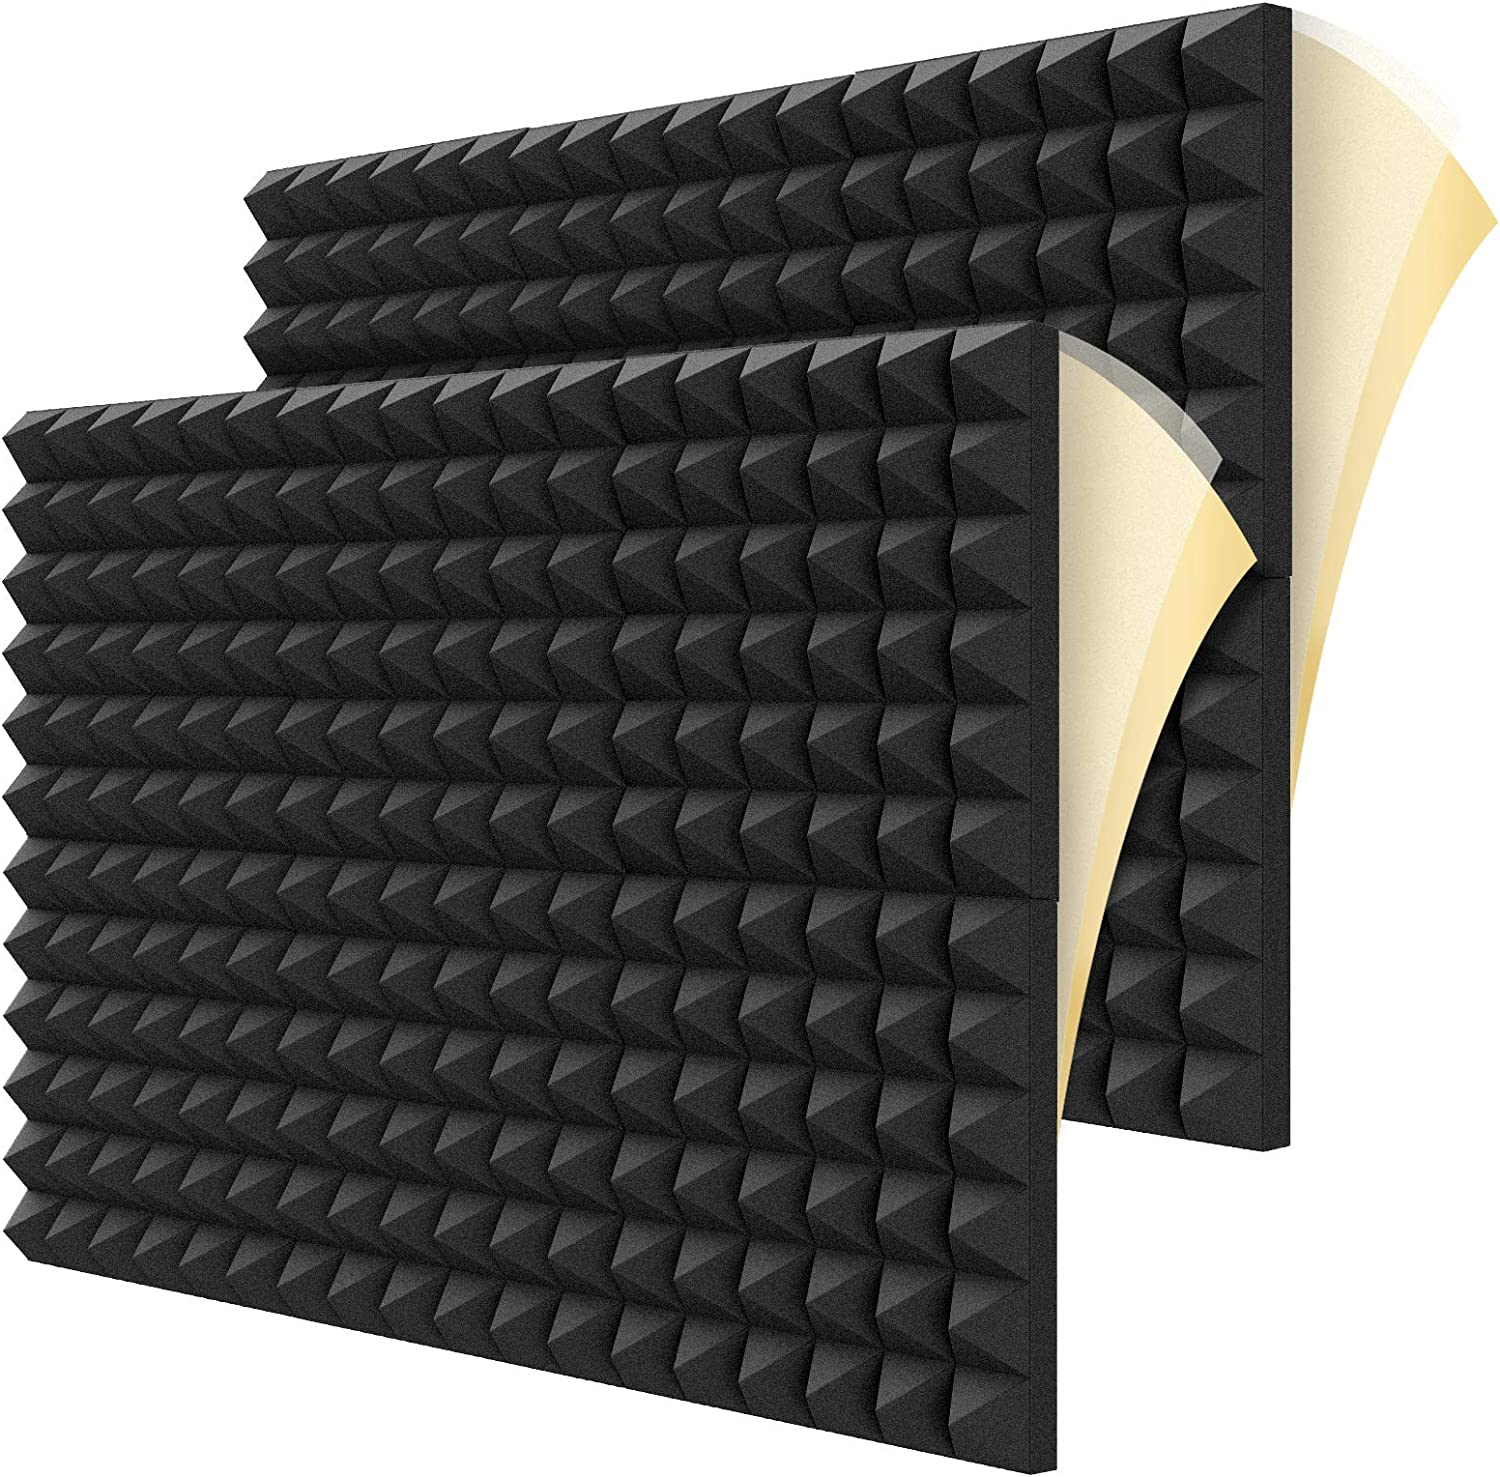 12 Pack Upgraded Colorado Springs Mall Fast Expand Pane Max 63% OFF Sound Self-adhesive Foam Proof